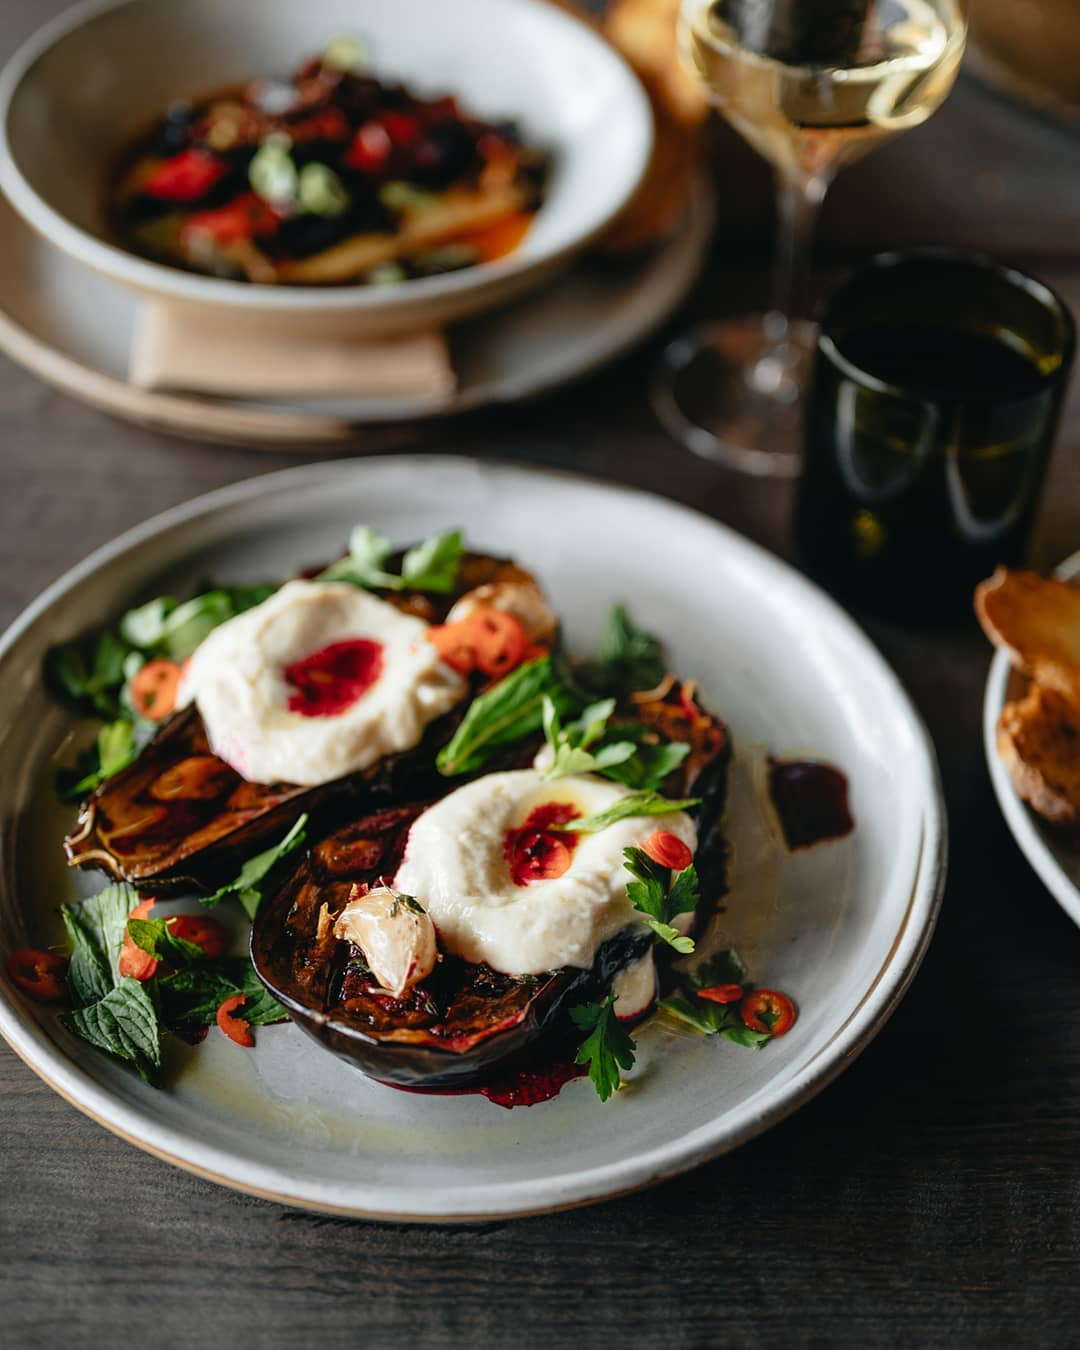 A dish with grilled eggplant, greens and white cheese on top.